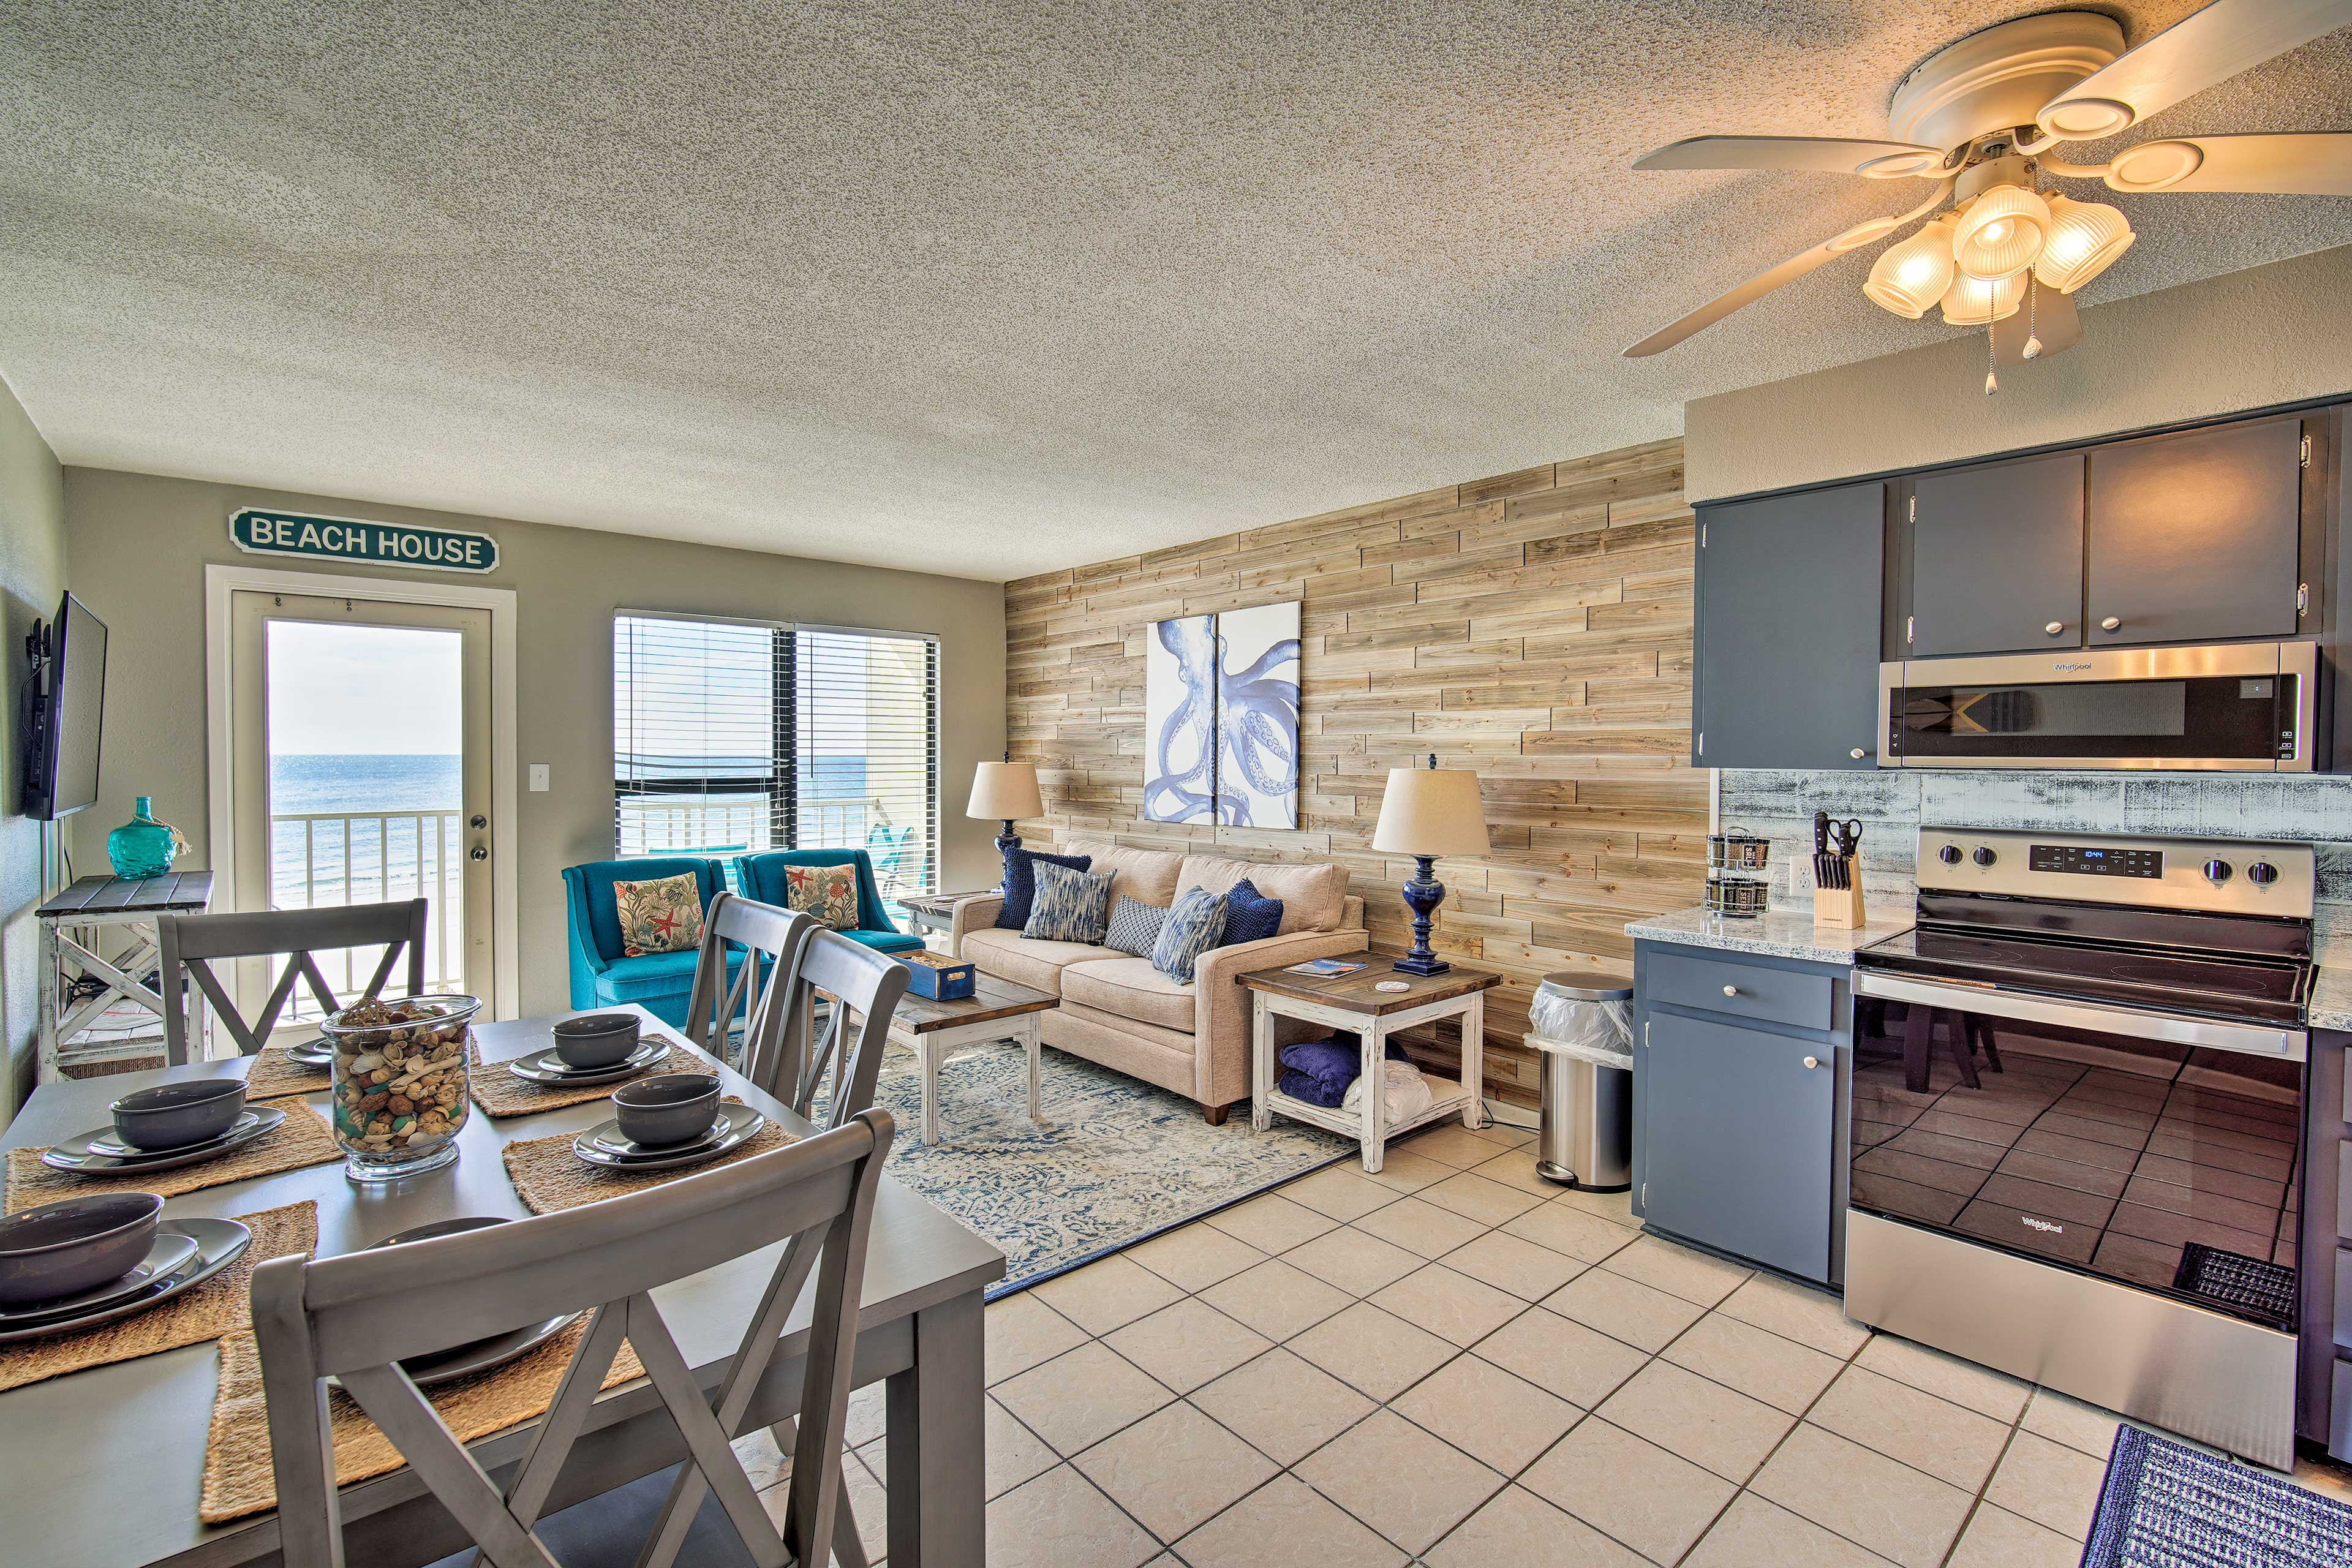 You'll find the open-concept living space cozy & bright.